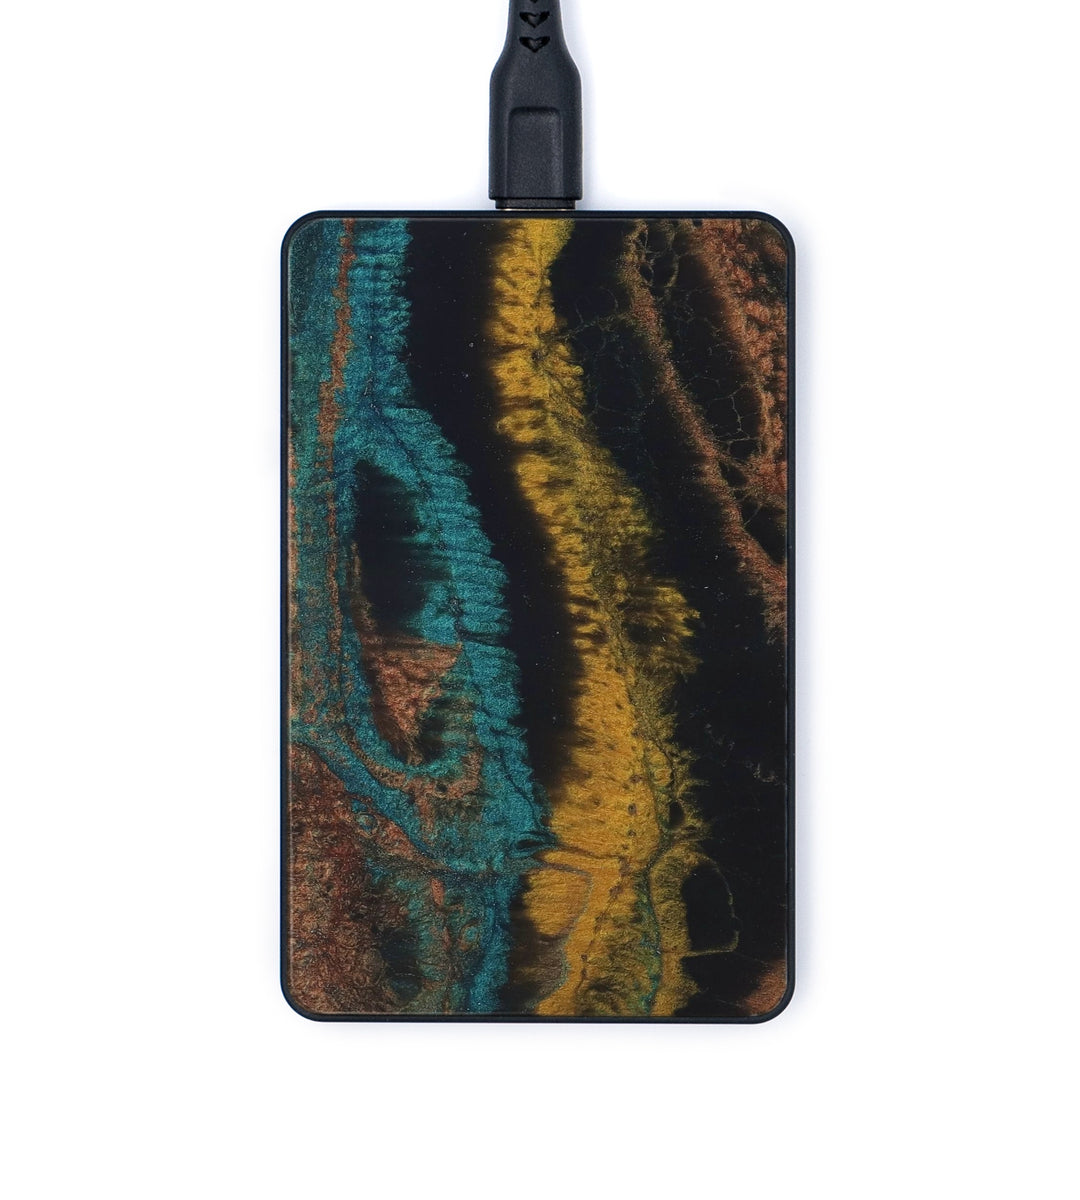 Thin ResinArt Wireless Charger - Keely (Teal & Gold, 347719)